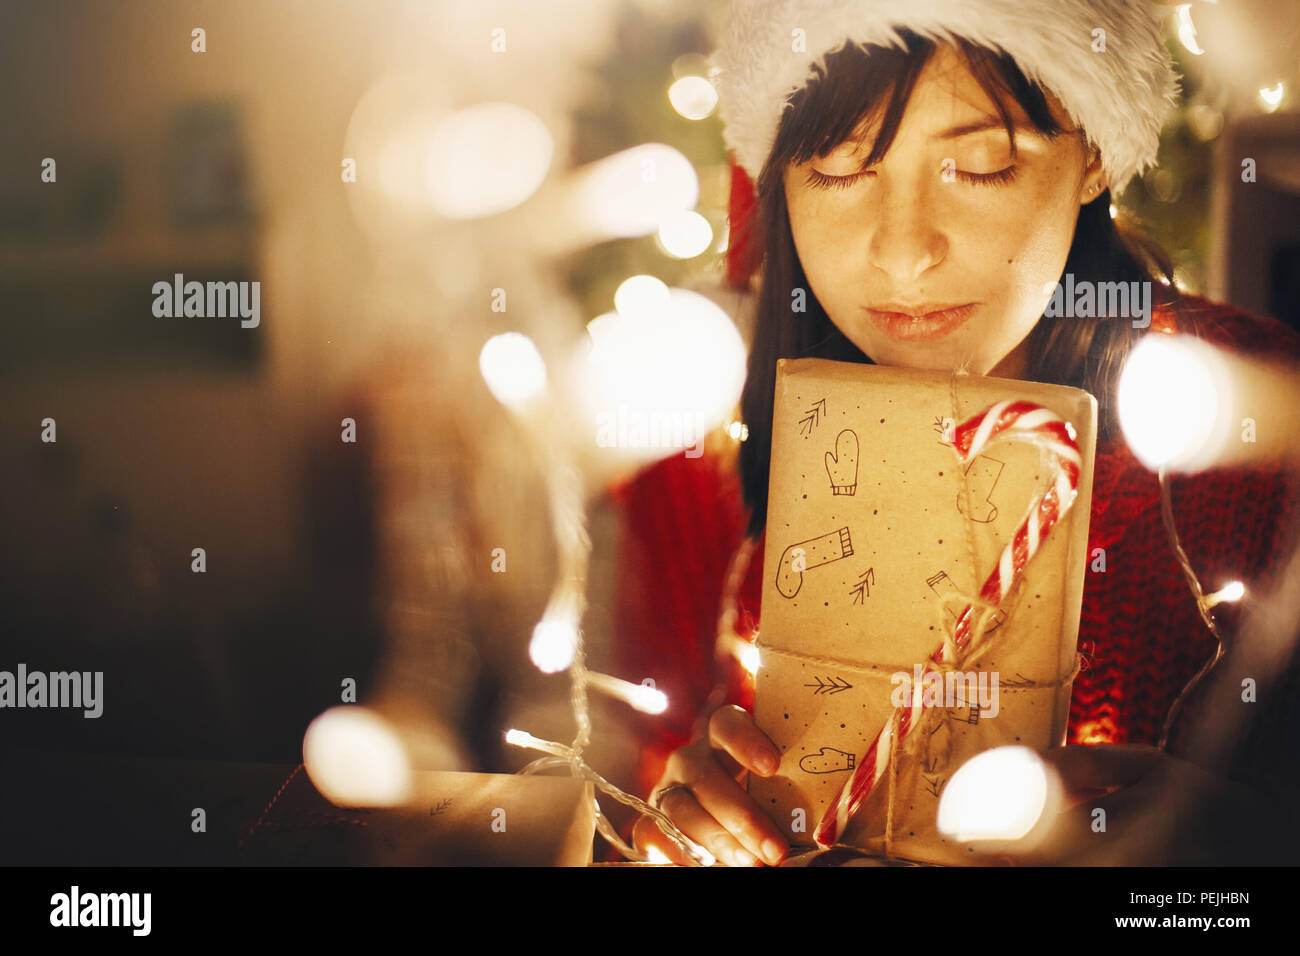 fbb37f19ffe4a christmas magic moments. girl in santa hat and red sweater holding christmas  present in lights in evening festive room at tree illumination. merry chr